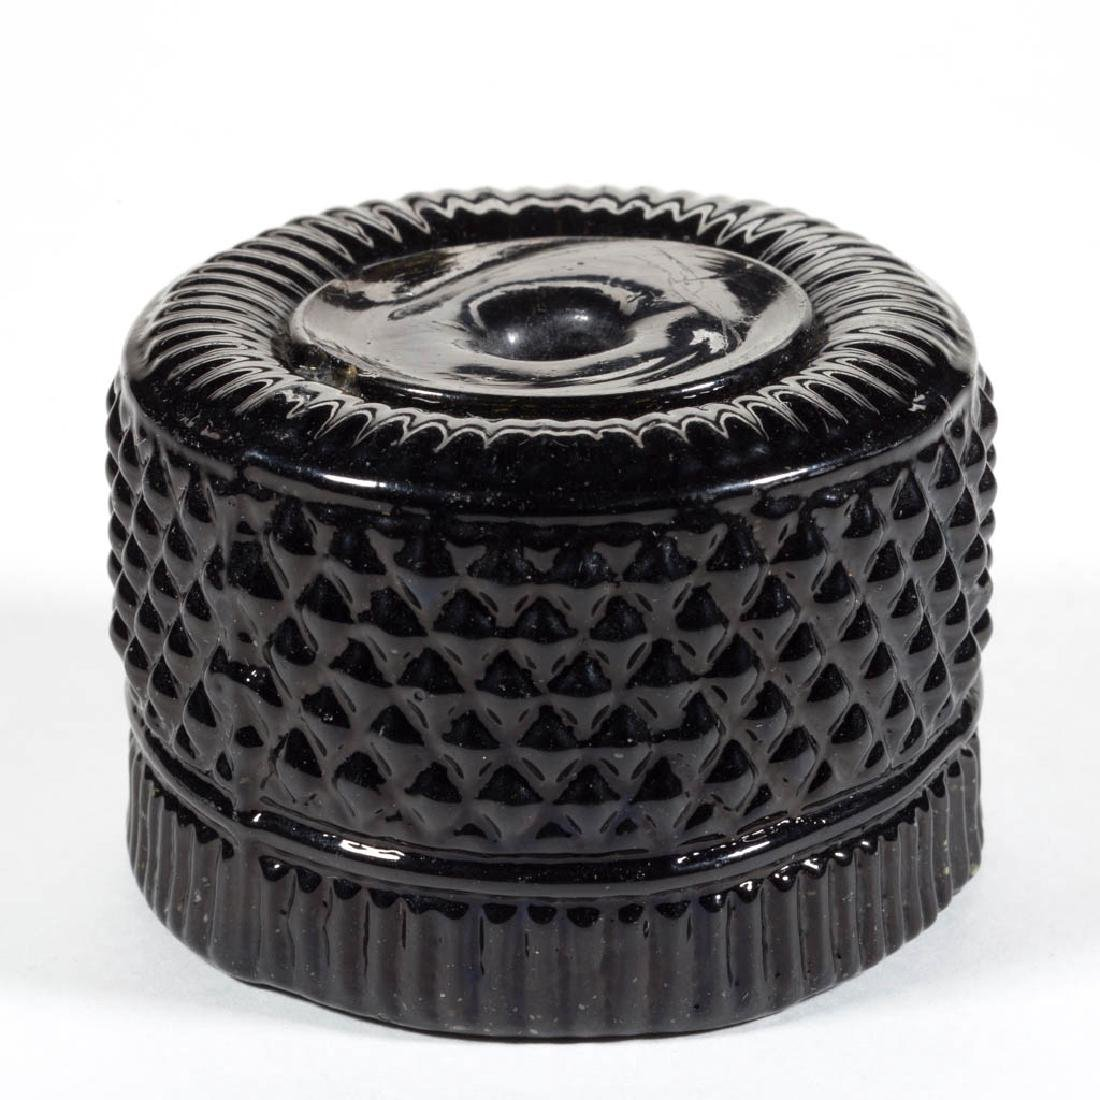 BLOWN-MOLDED GII-18 INKWELL